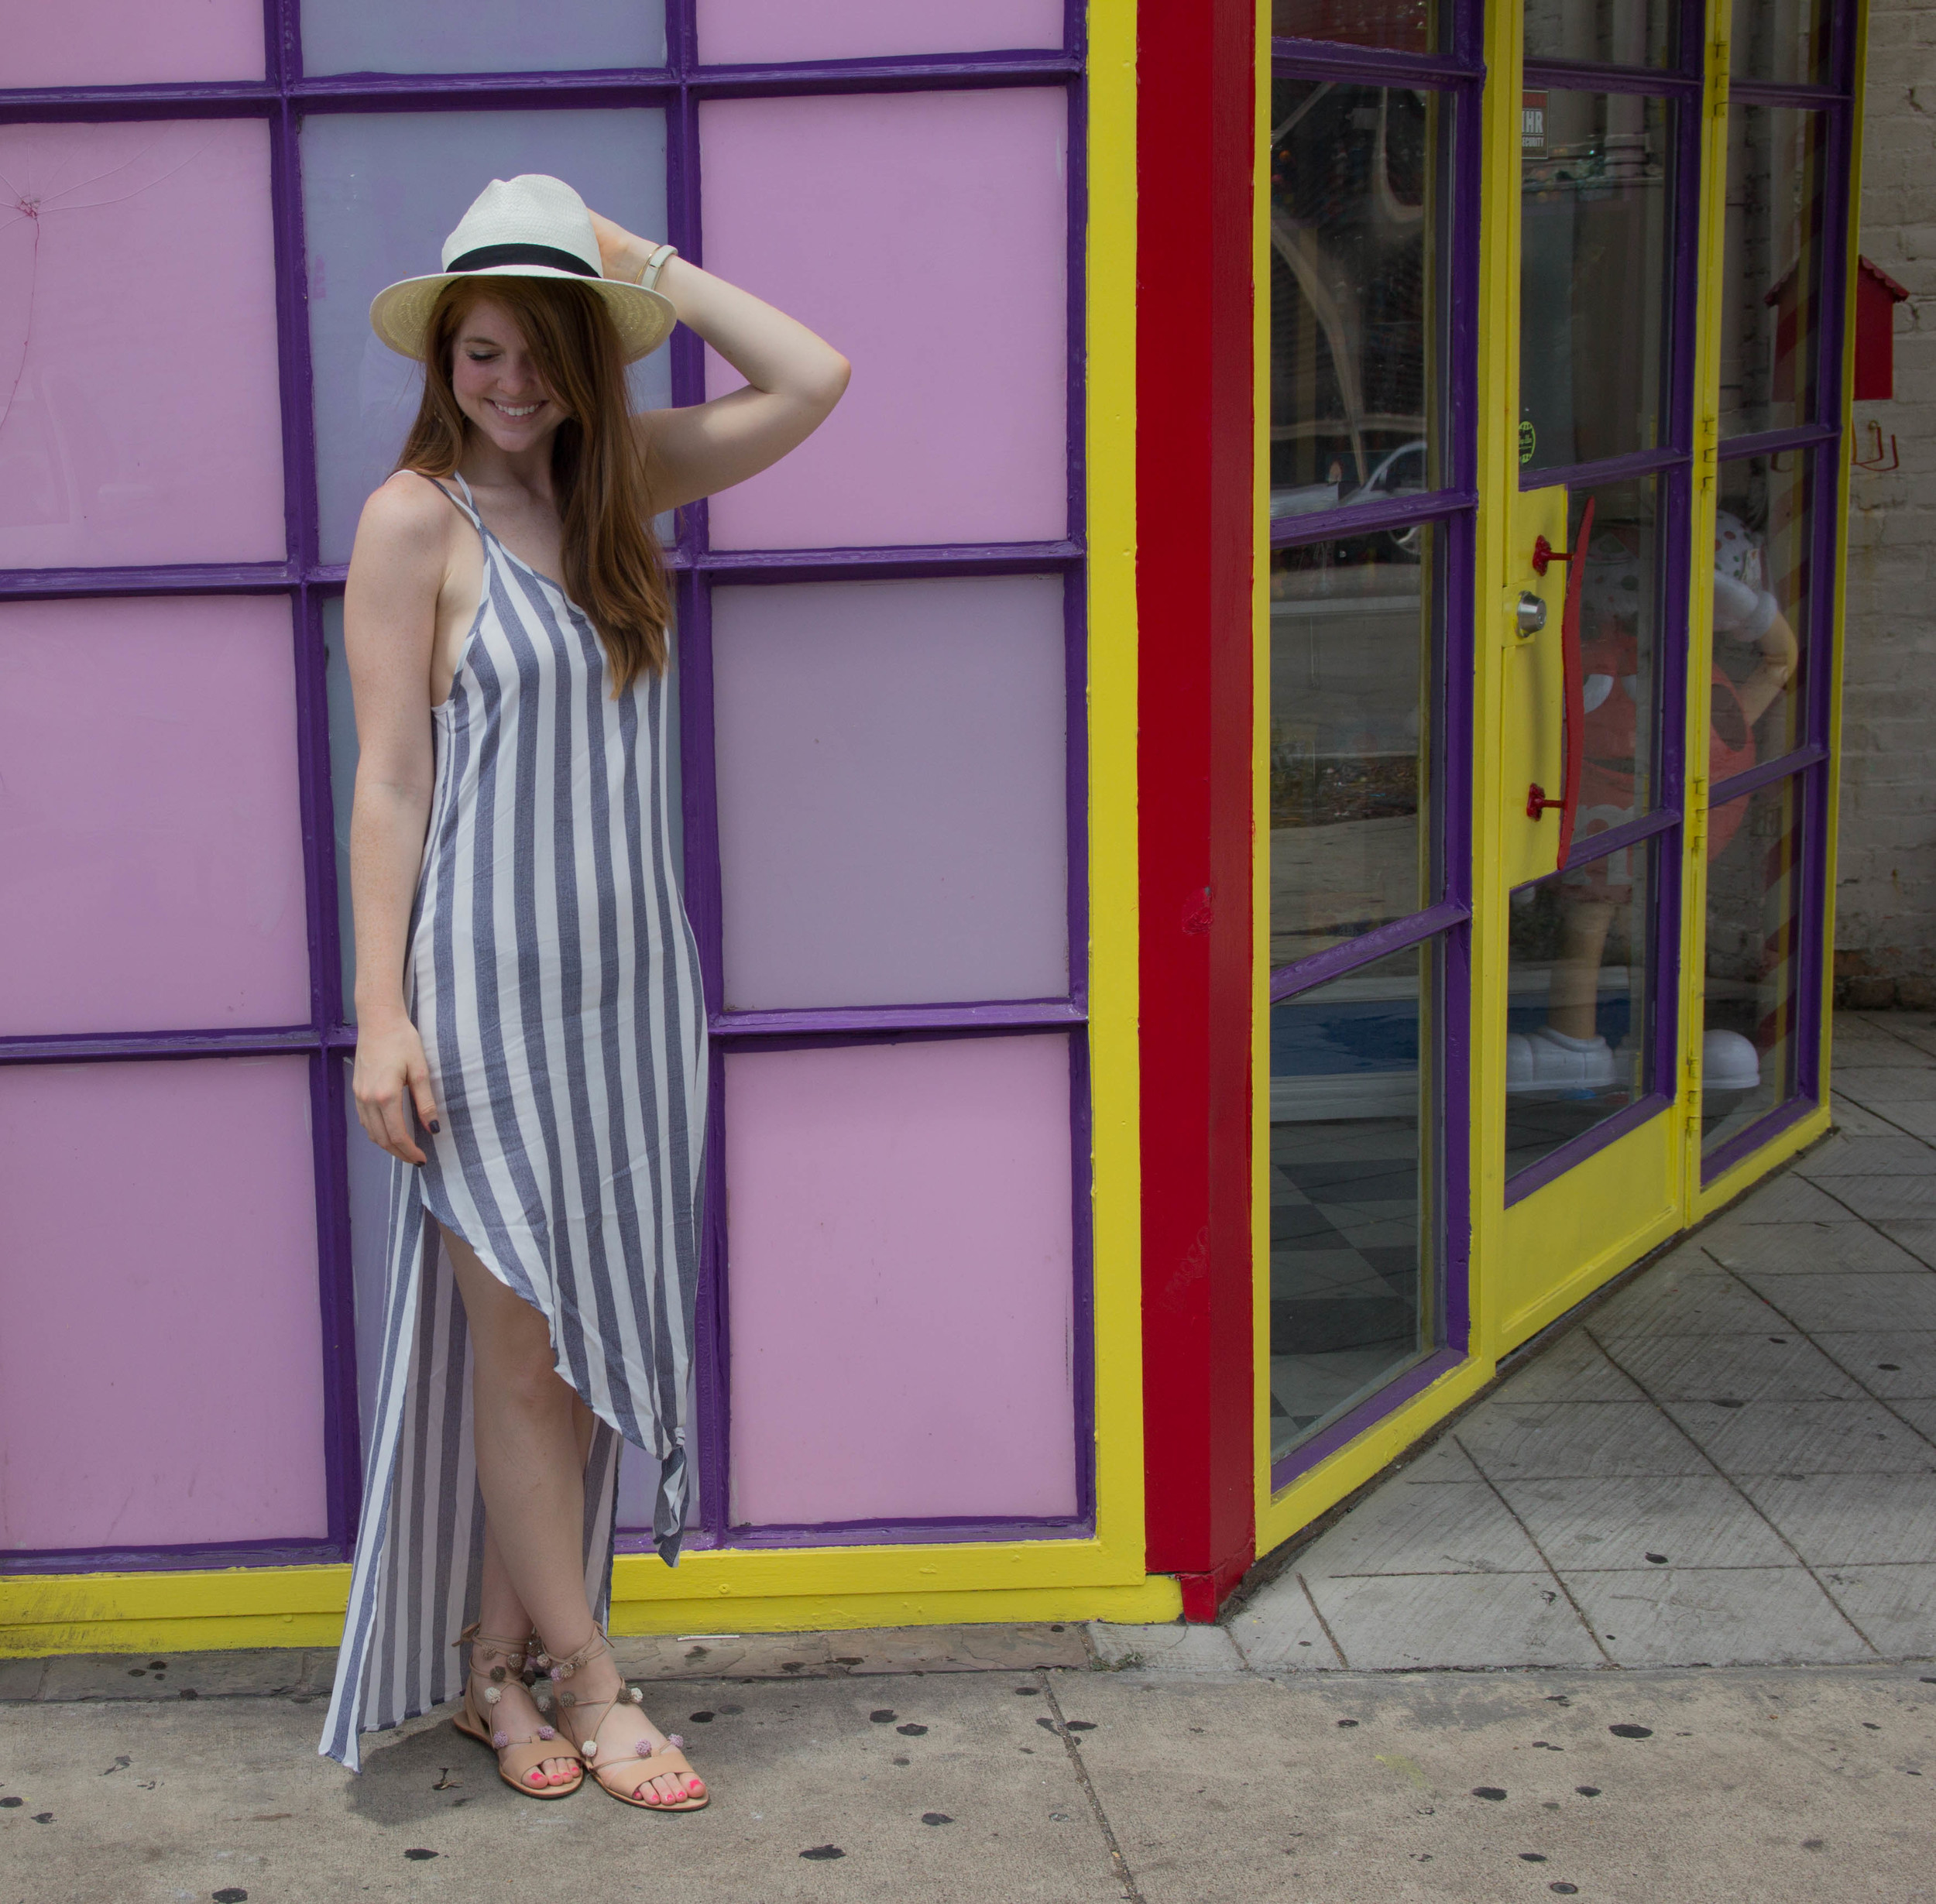 nordstrom bottom knot stripe maxi dress, asos white straw panama hat, kendra scott sophee earrings, loeffler randall lace up pom pom sandals, essie smokin hot, gold arrow cuff, how to tie a knot in clothing, knotted tank, knotted dress